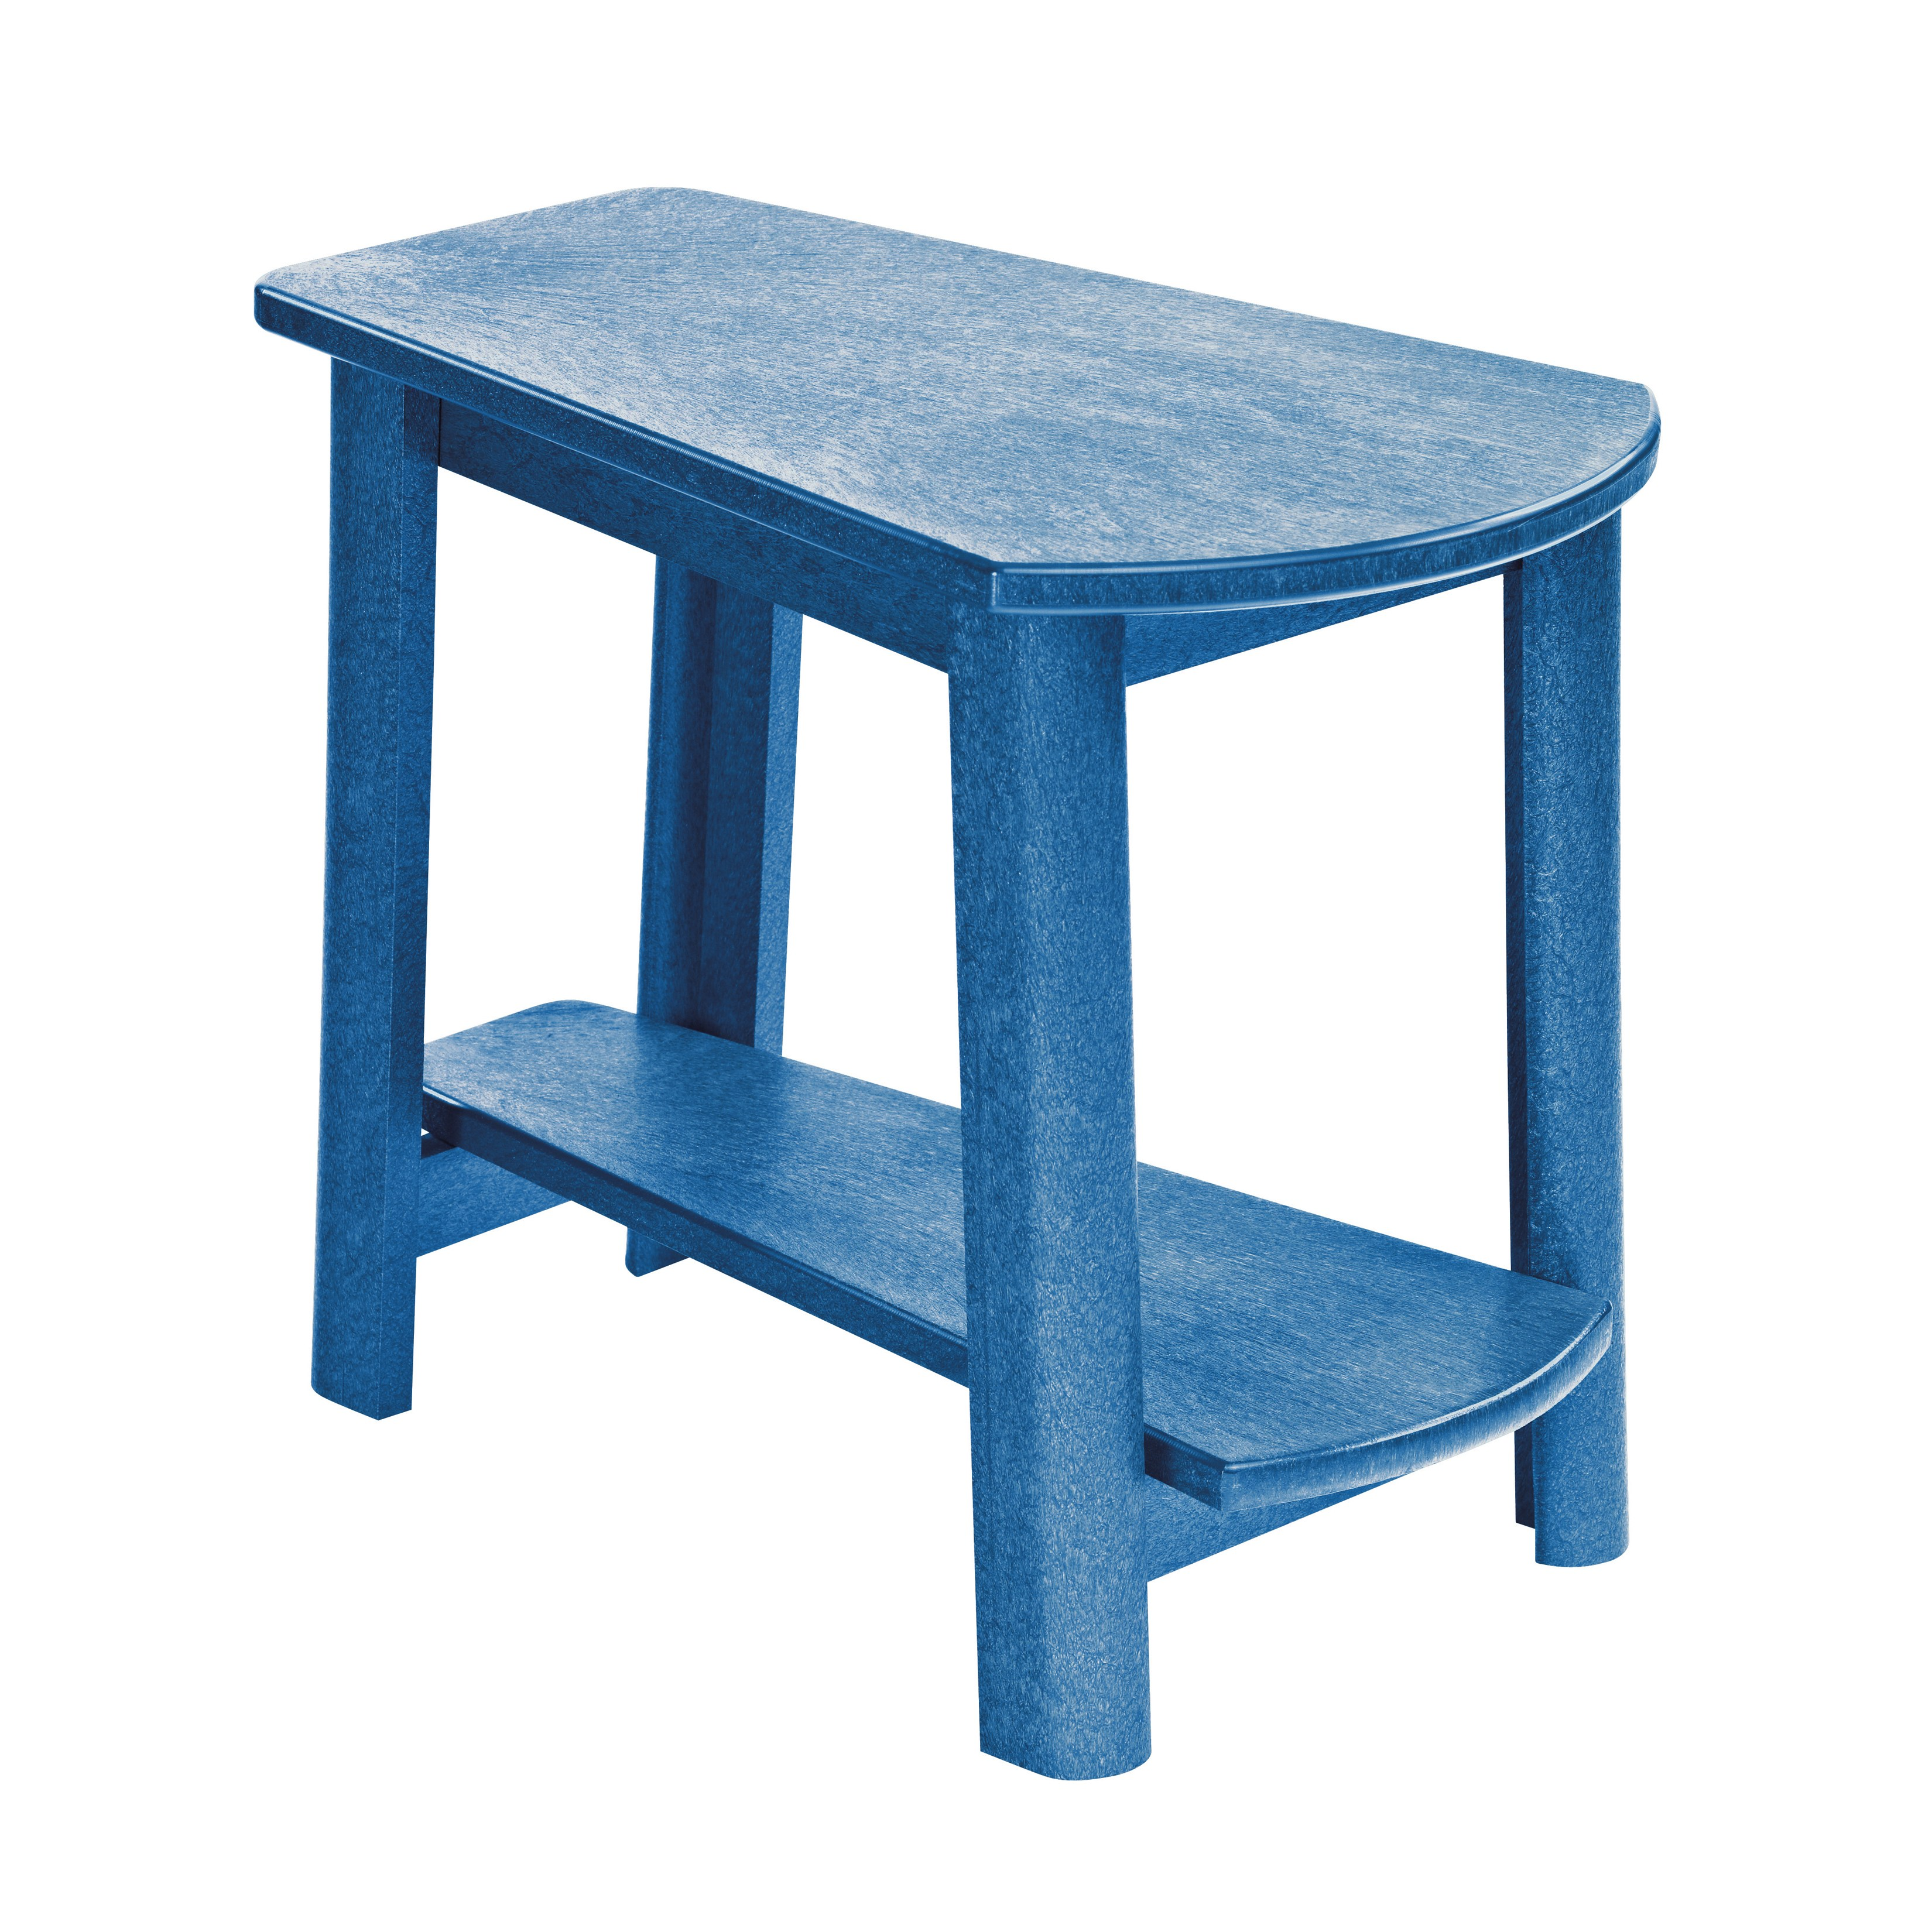 generations blue accent table free shipping today distressed red coffee modern living room chairs office chair ashley furniture ott end tables round entryway fine edmonton dining